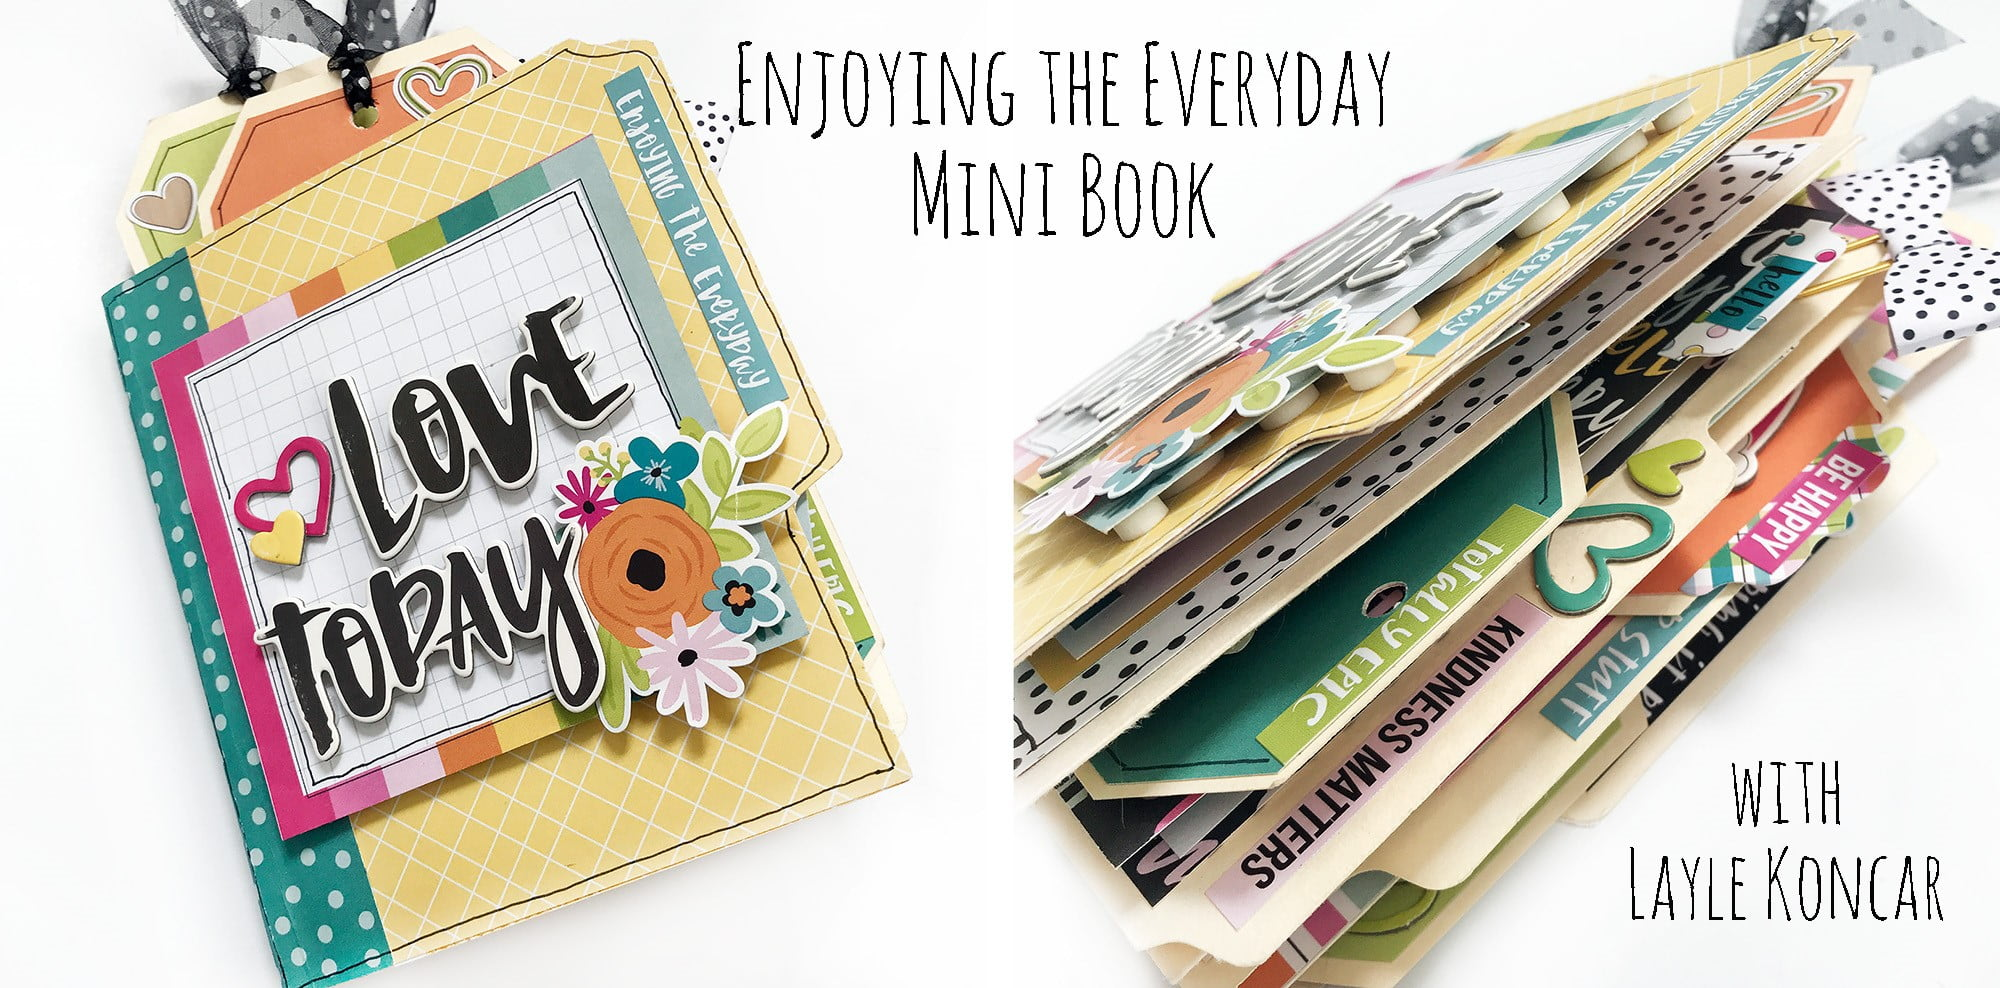 Enjoying the Everyday – File Folder Mini Book with Layle Koncar